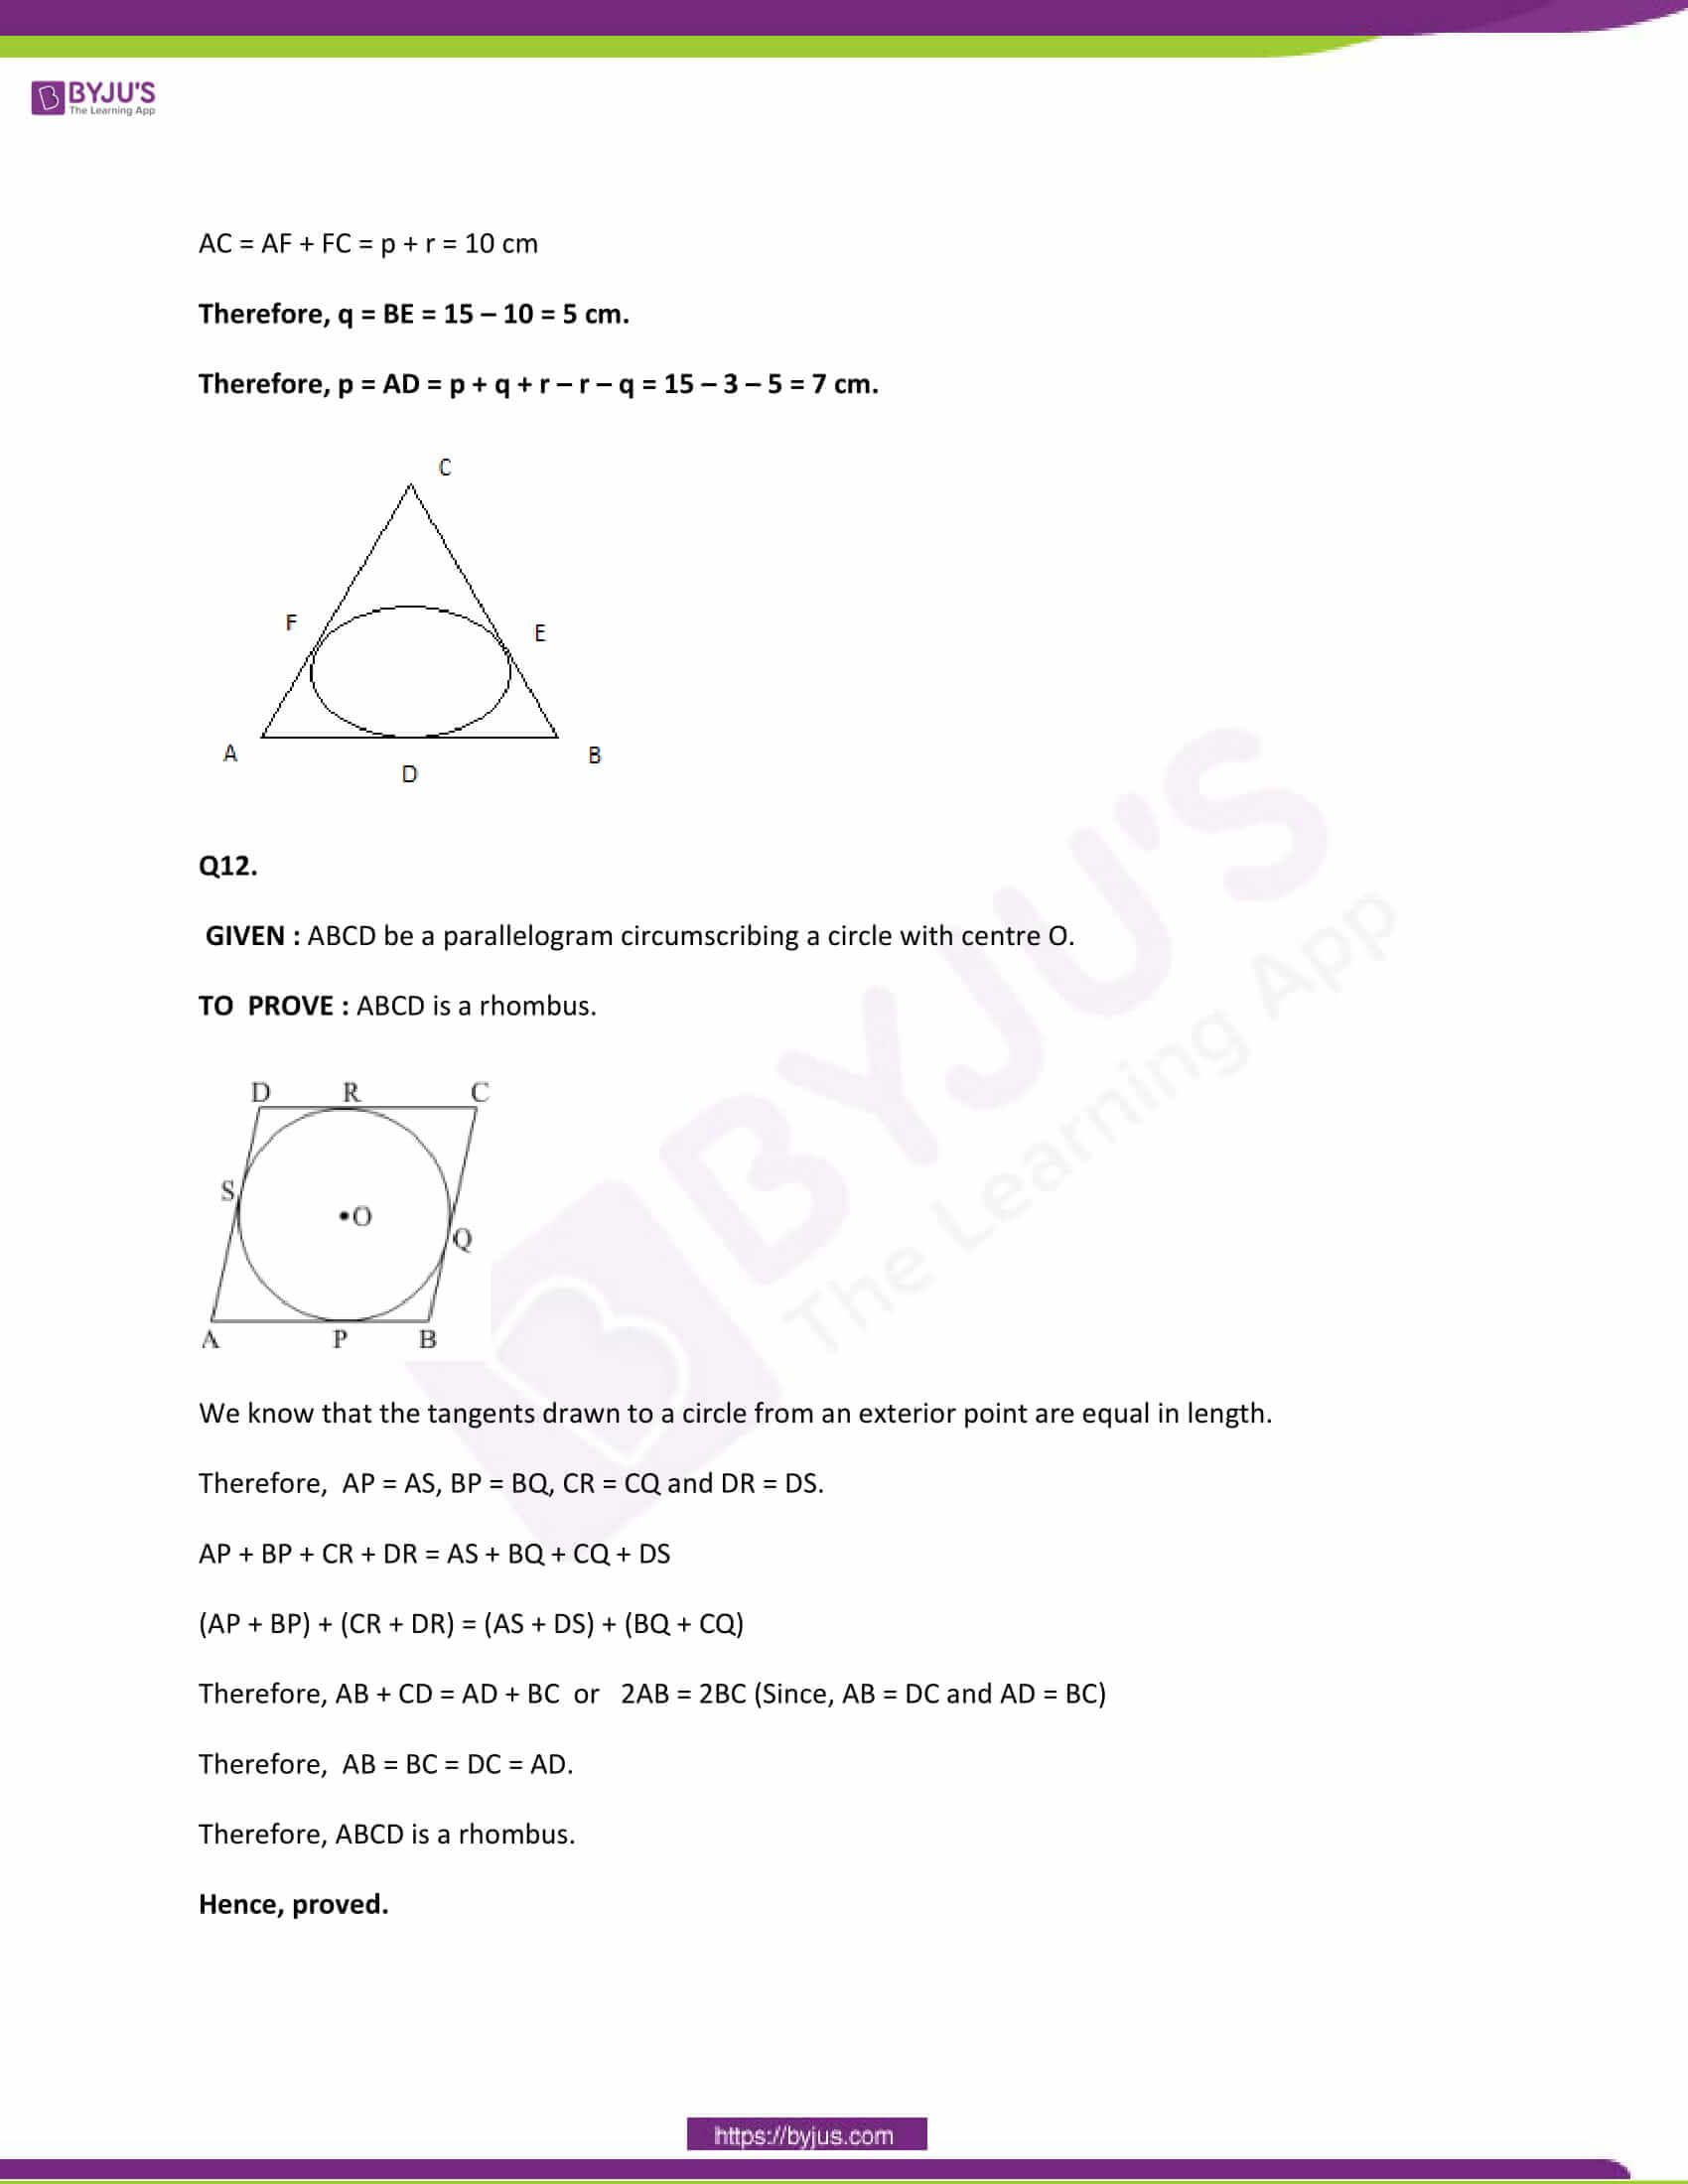 CBSE Class 10 Maths Papers Solution 2013 06